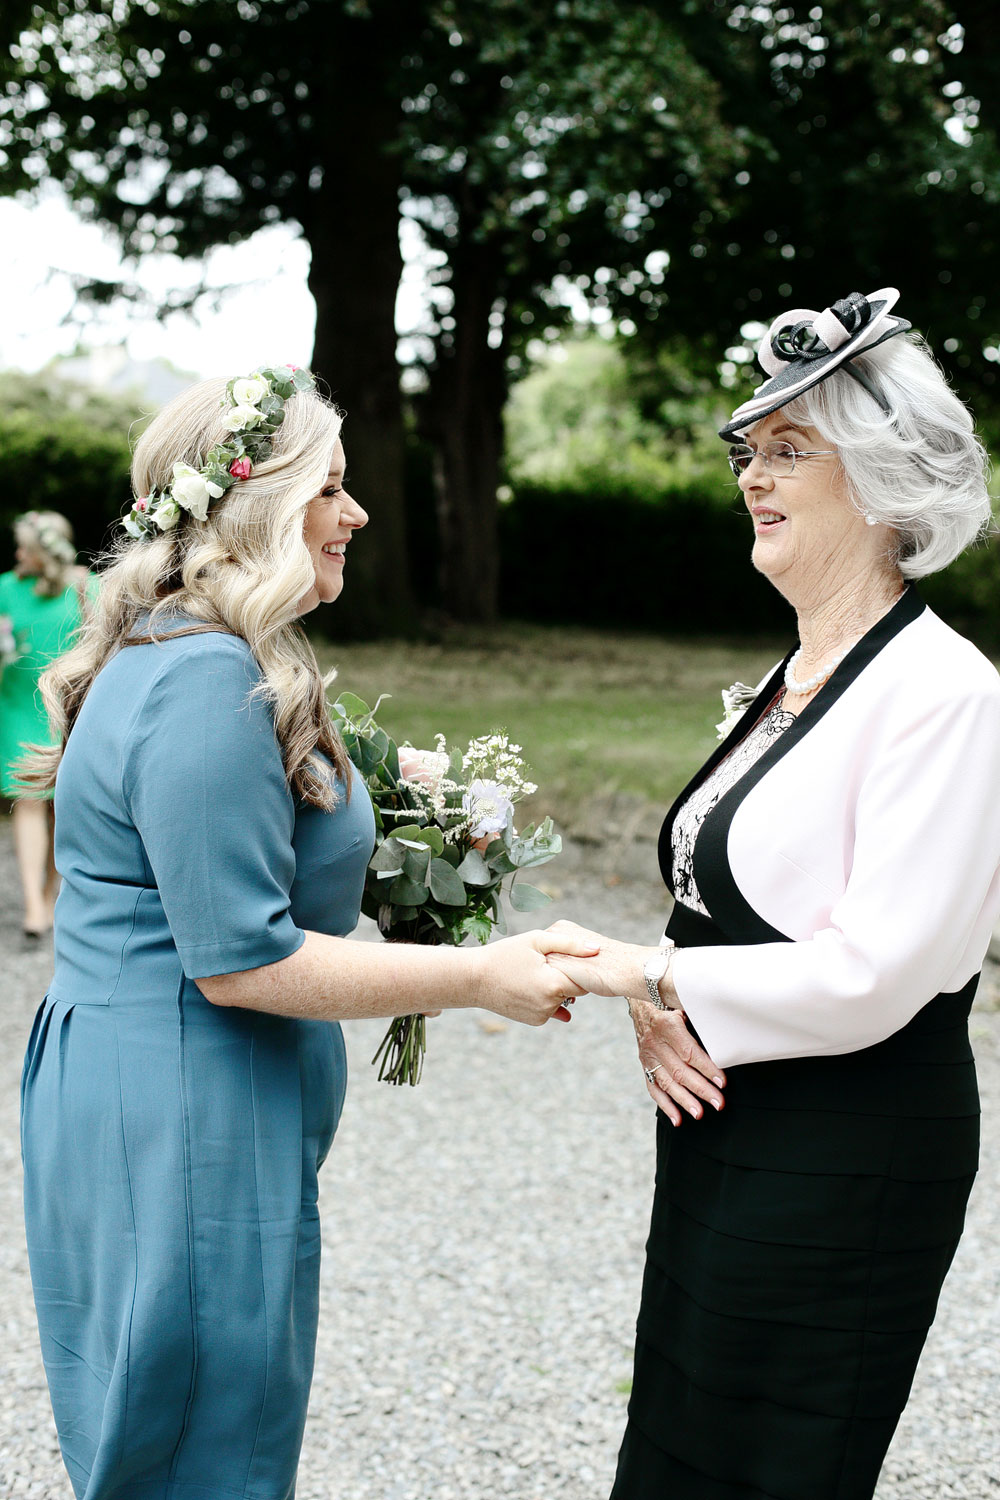 tinakilly house wedding wicklow photo21.jpg